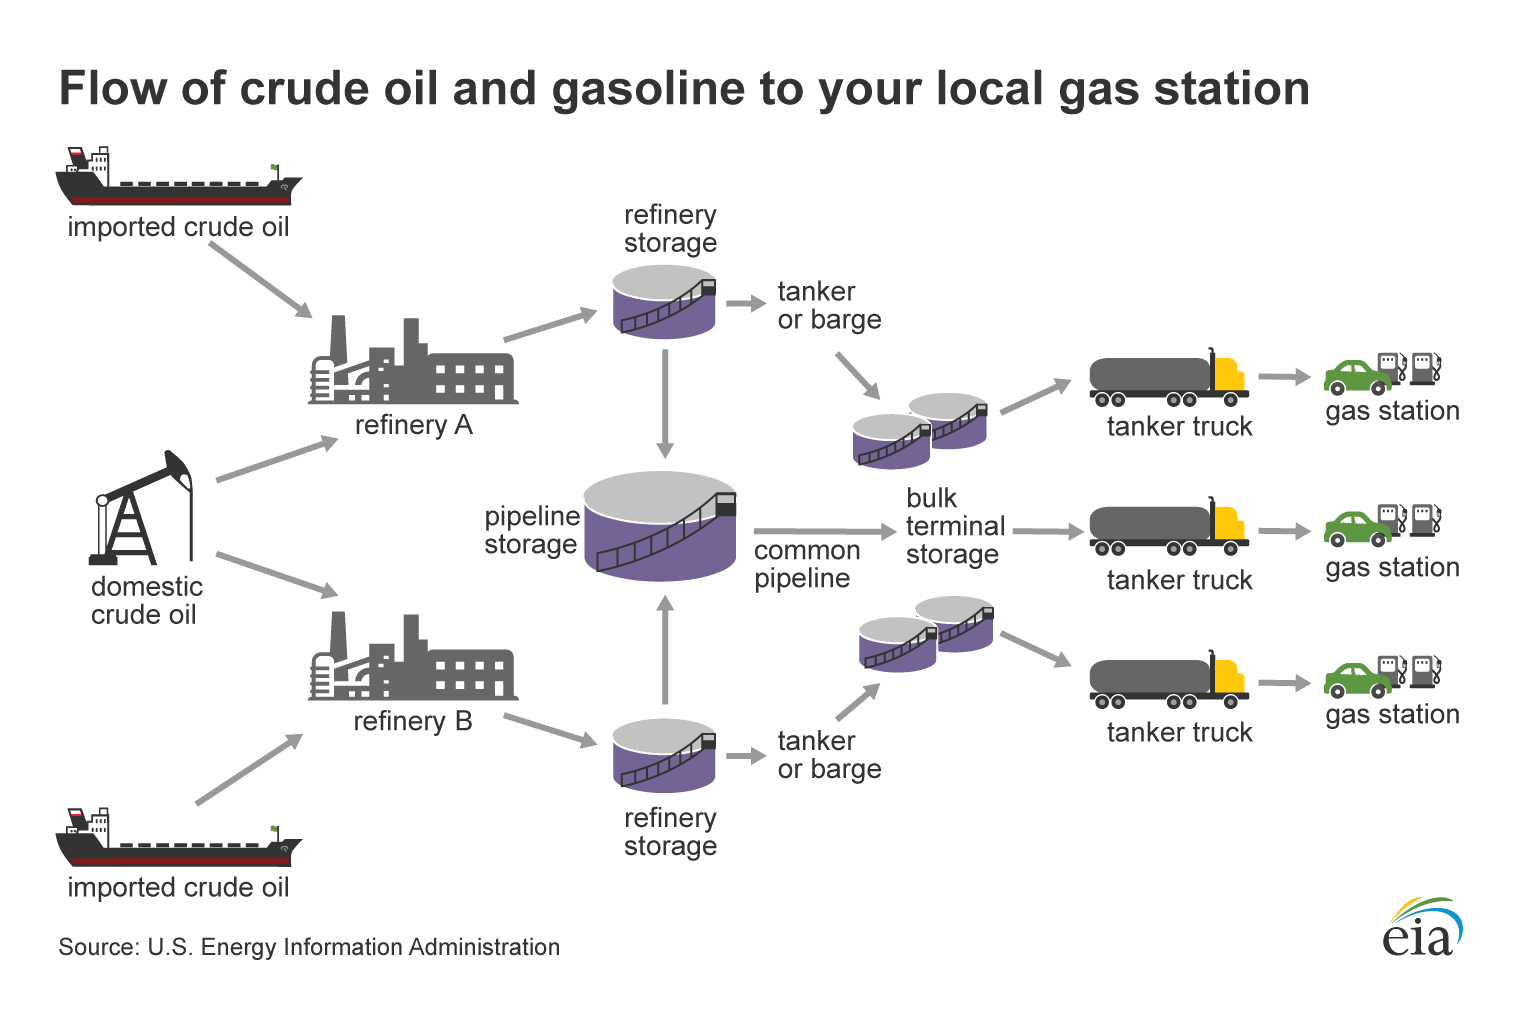 A diagram showing the flow of crude oil, gasoline, and diesel fuel from supply sources to retail fueling stations.